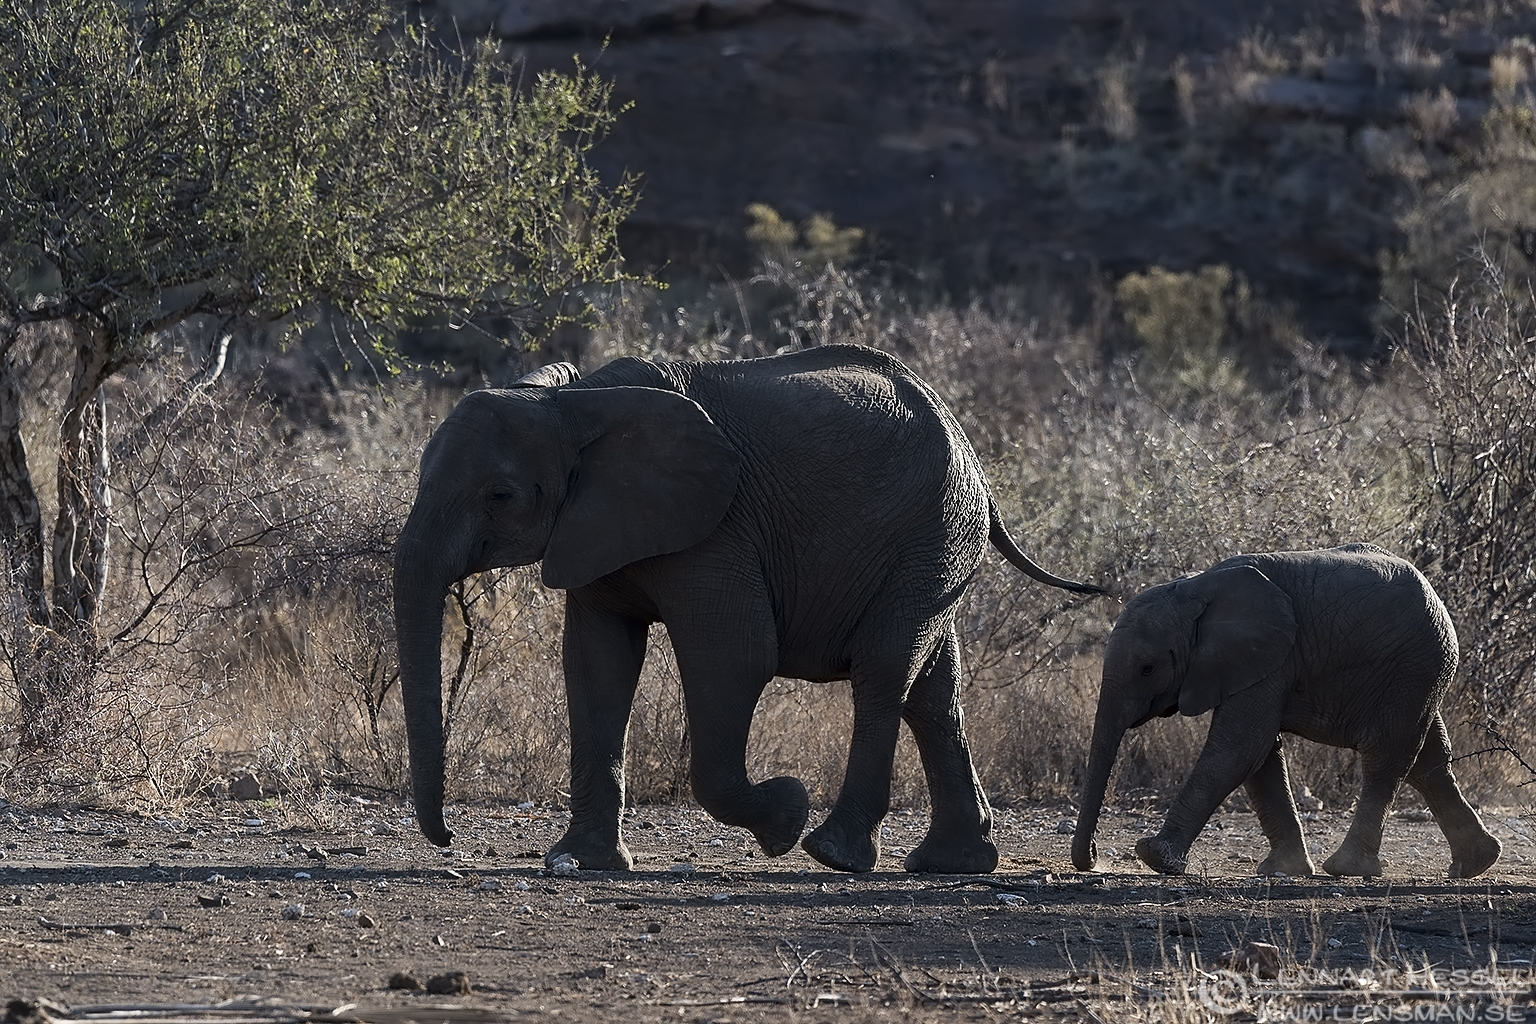 Elephants Mapungubwe South Africa